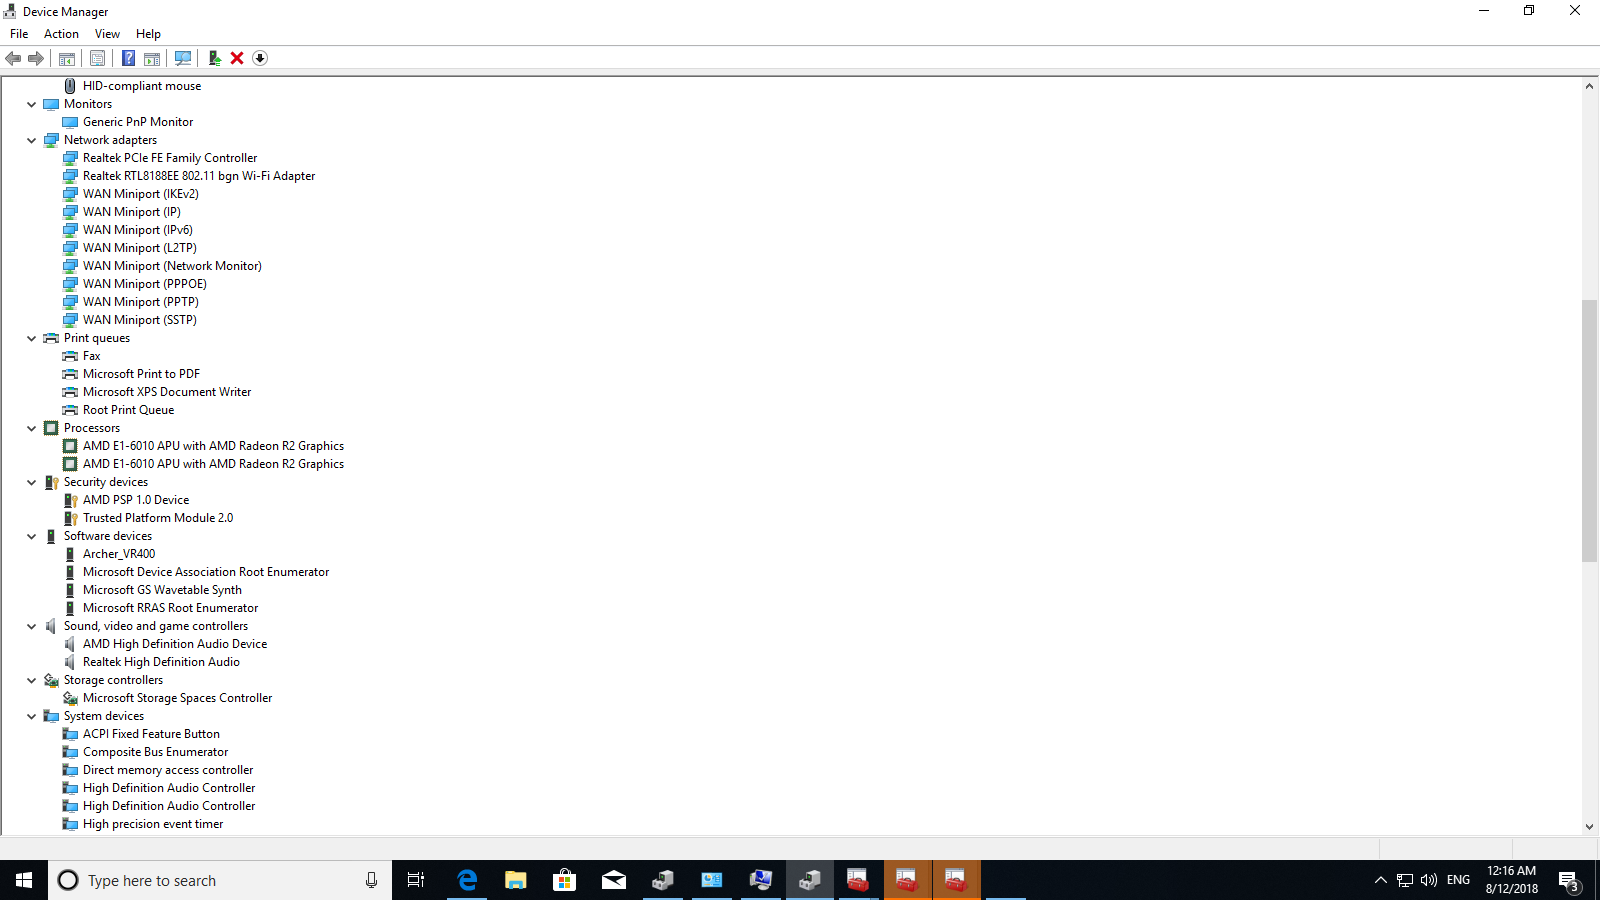 Someone has created a network on my personal PC without my permission. b46b068d-e1c4-4c45-a317-249acd09cfd6?upload=true.png